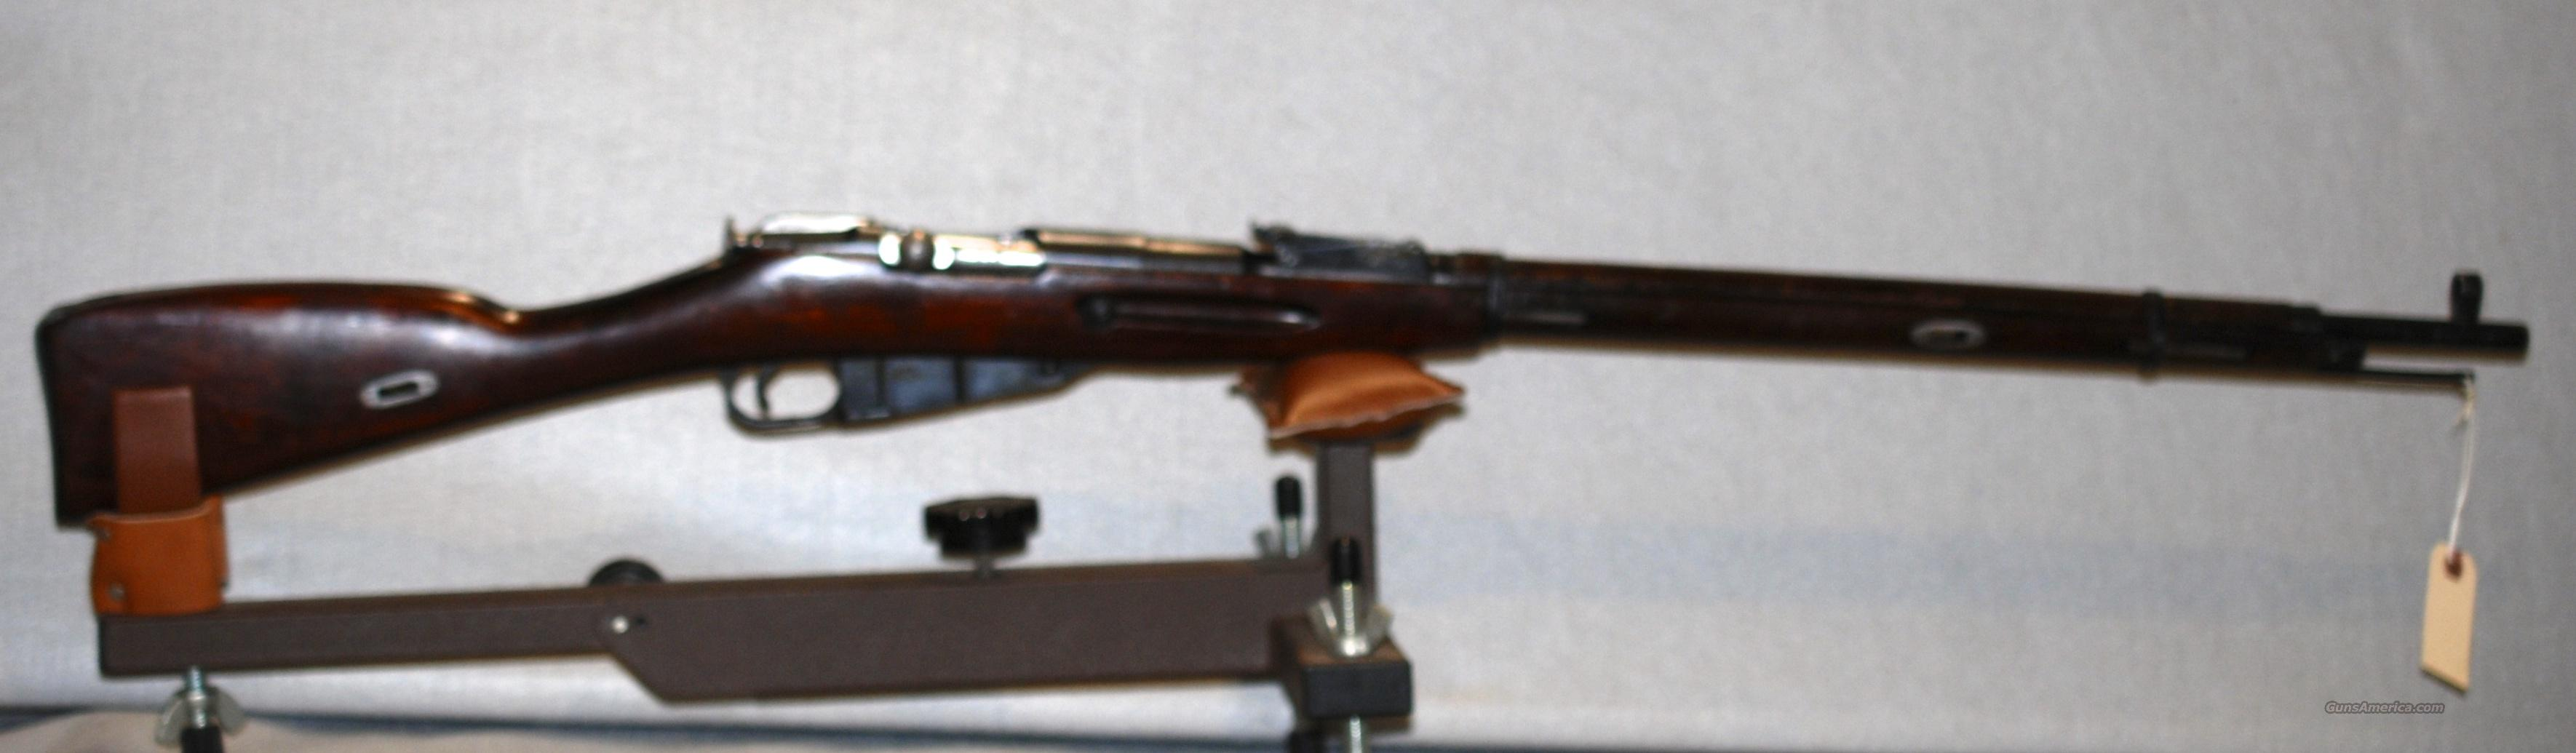 Mosin/Nagant rifle, Tula Factory 1942  Guns > Rifles > Mosin-Nagant Rifles/Carbines